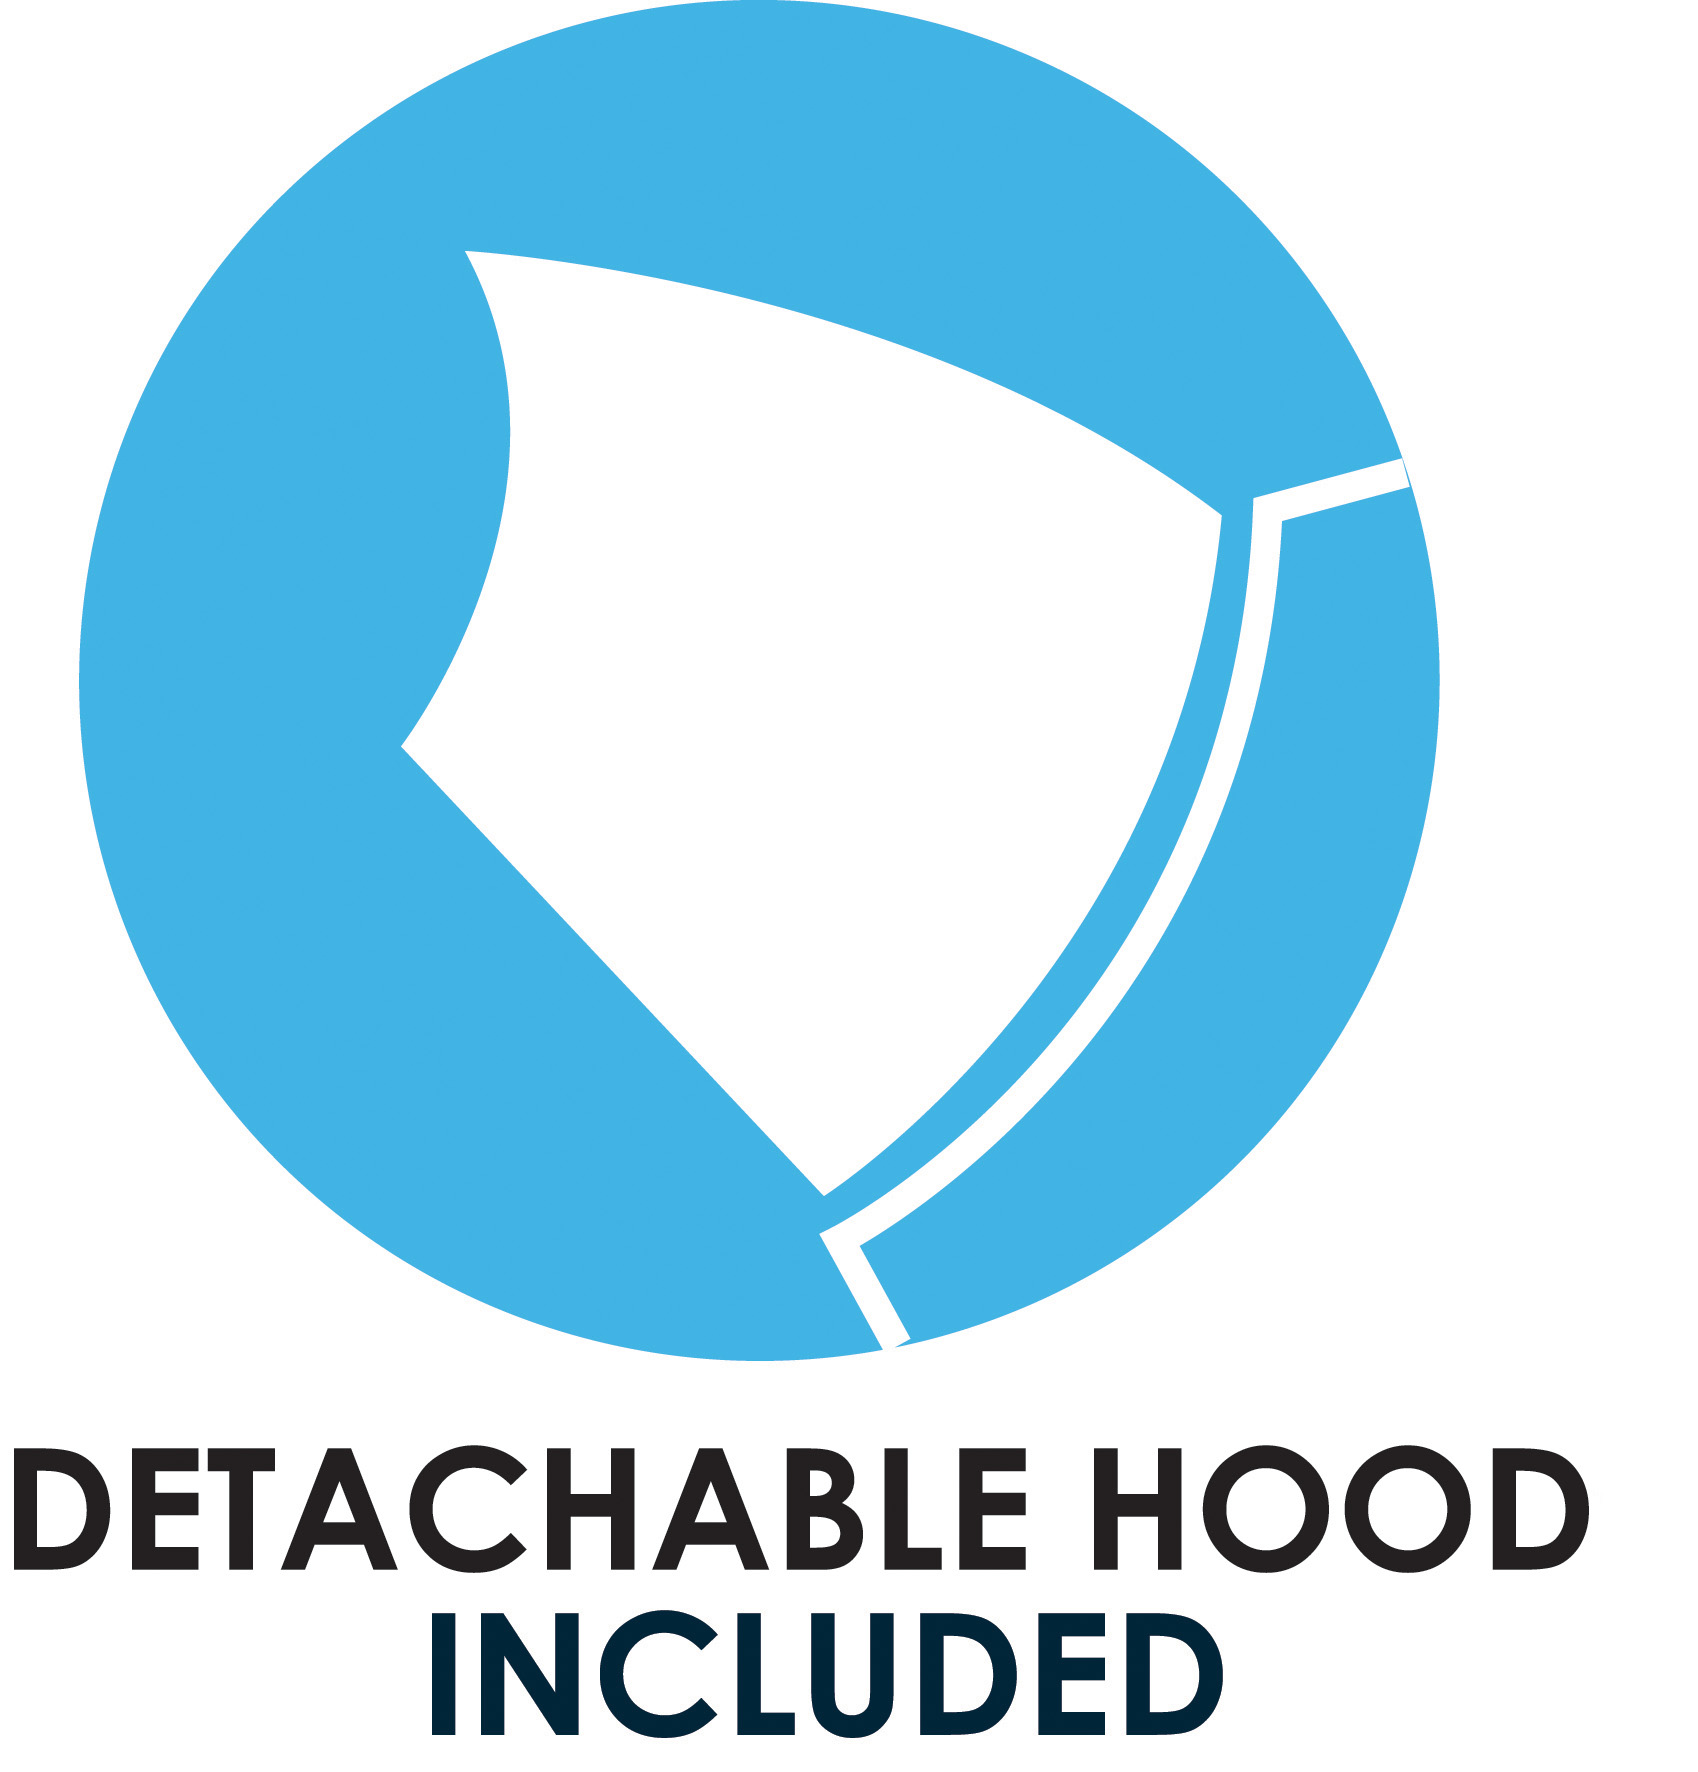 detachable hood